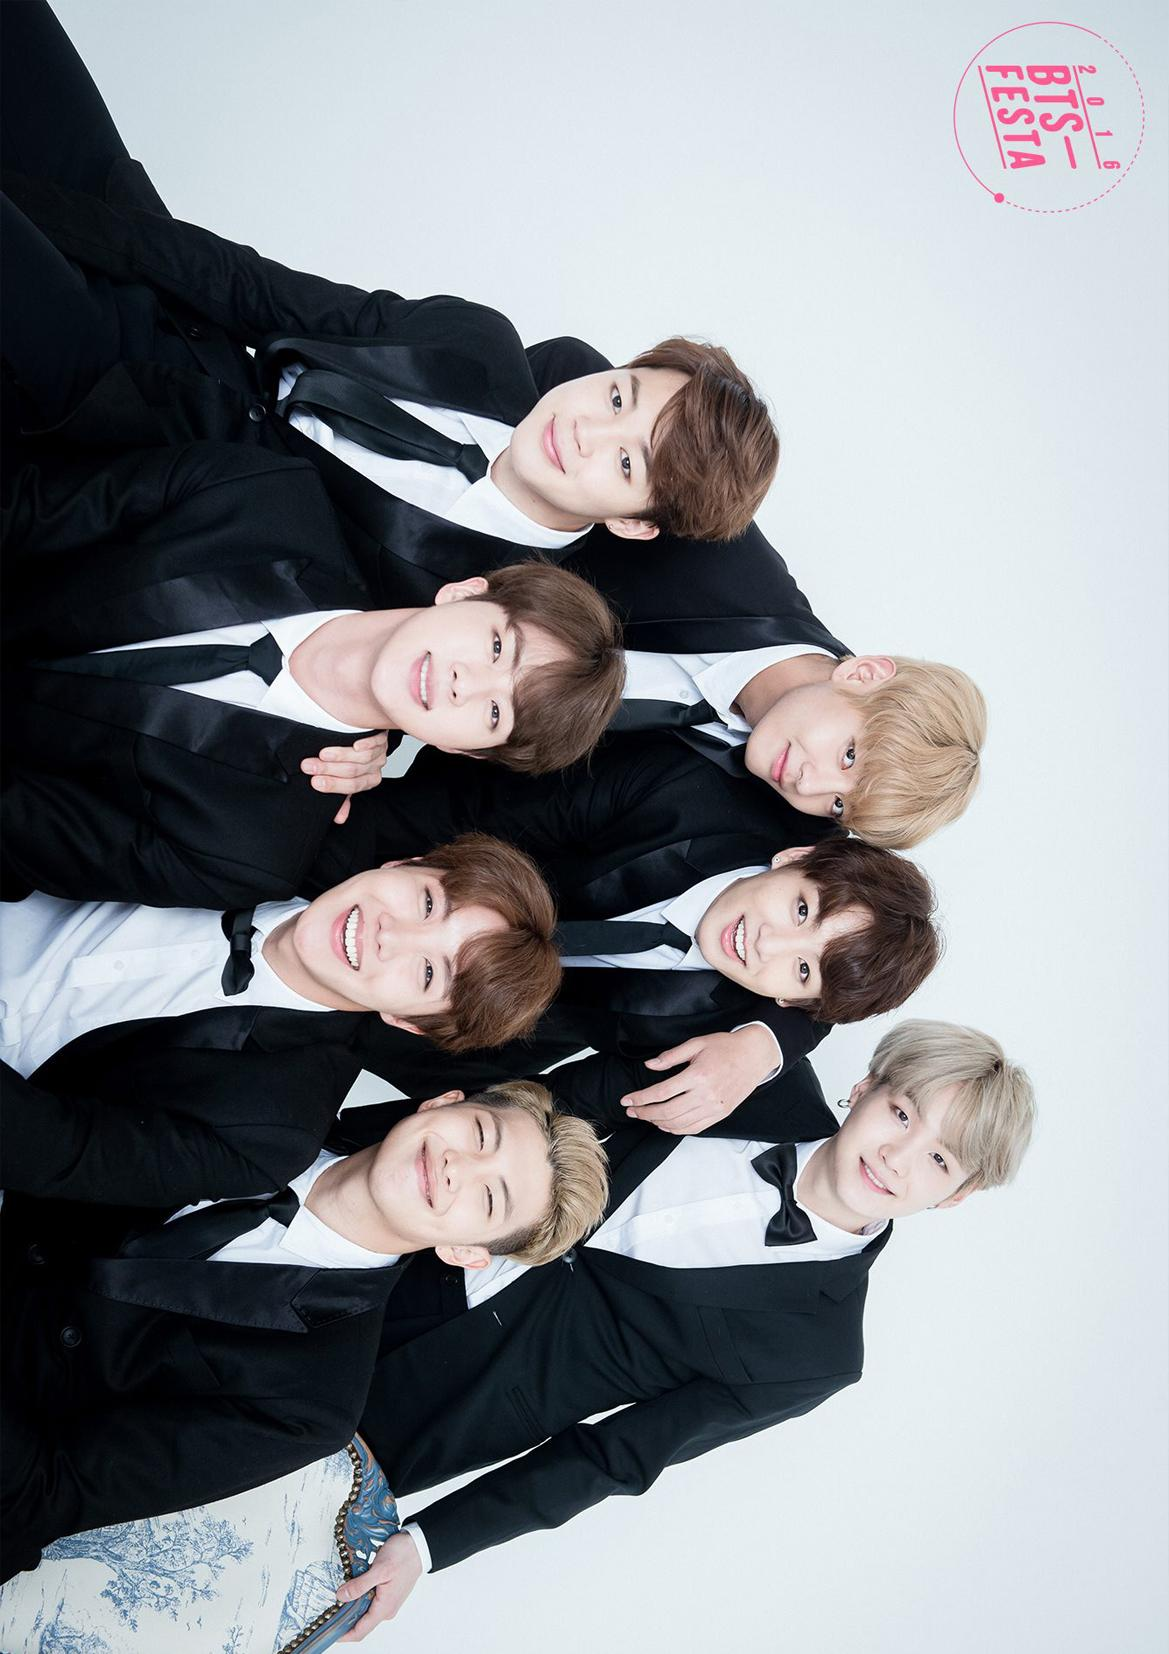 New Bangtan Boys BTS Wall poster for Girl's room Livingroom Decorations Wall sticker white Coated Paper Pictures Home Decor